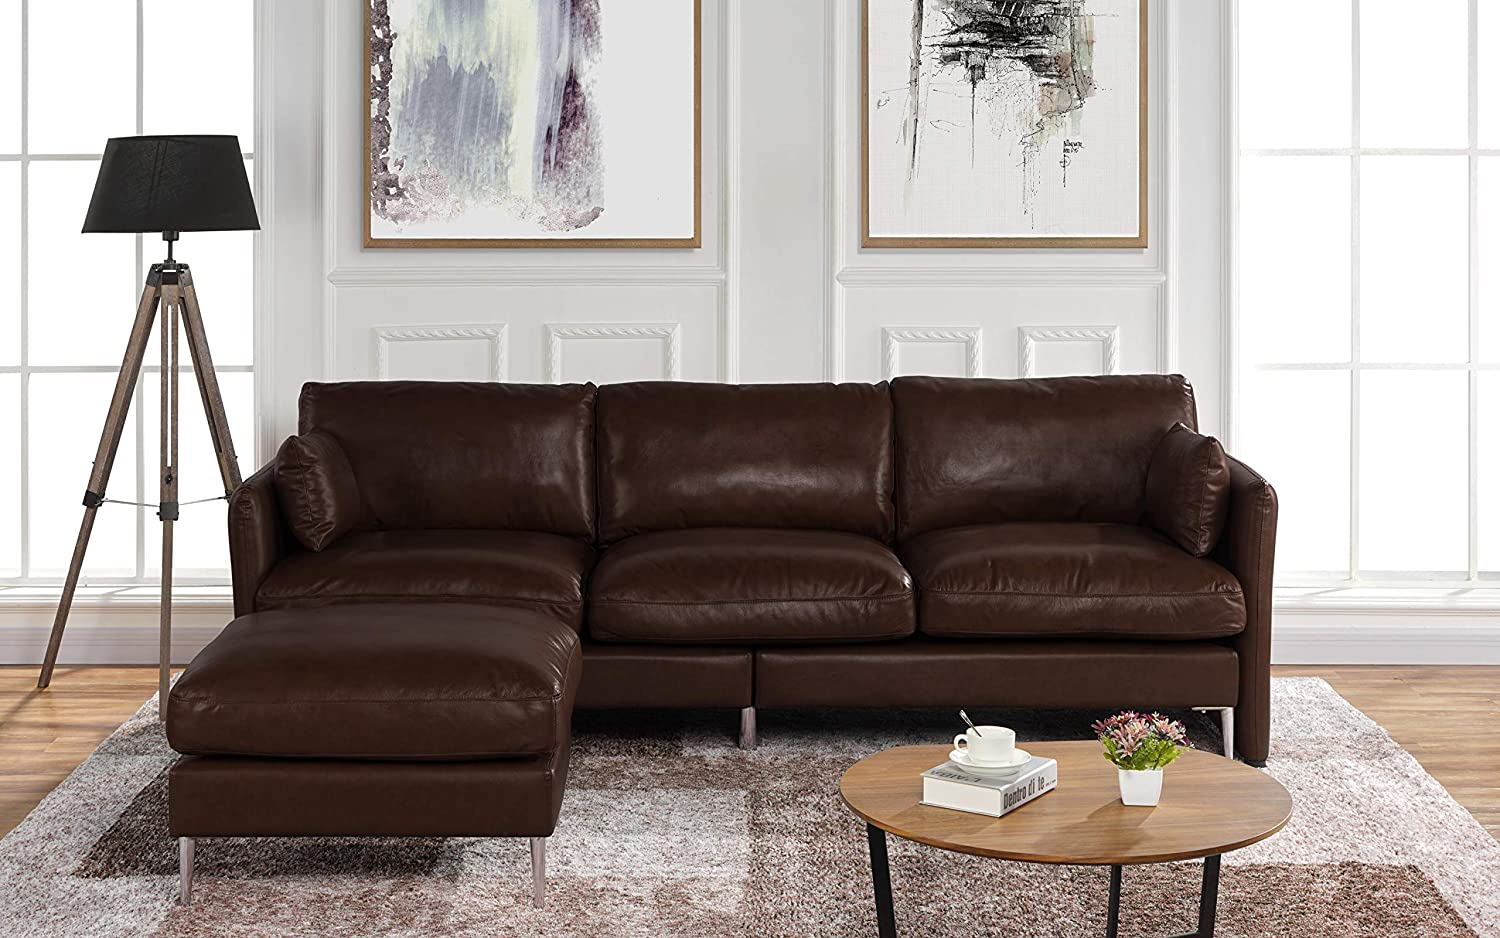 Amazon.com: Modern Leather Sectional Sofa, L Shape Couch ...